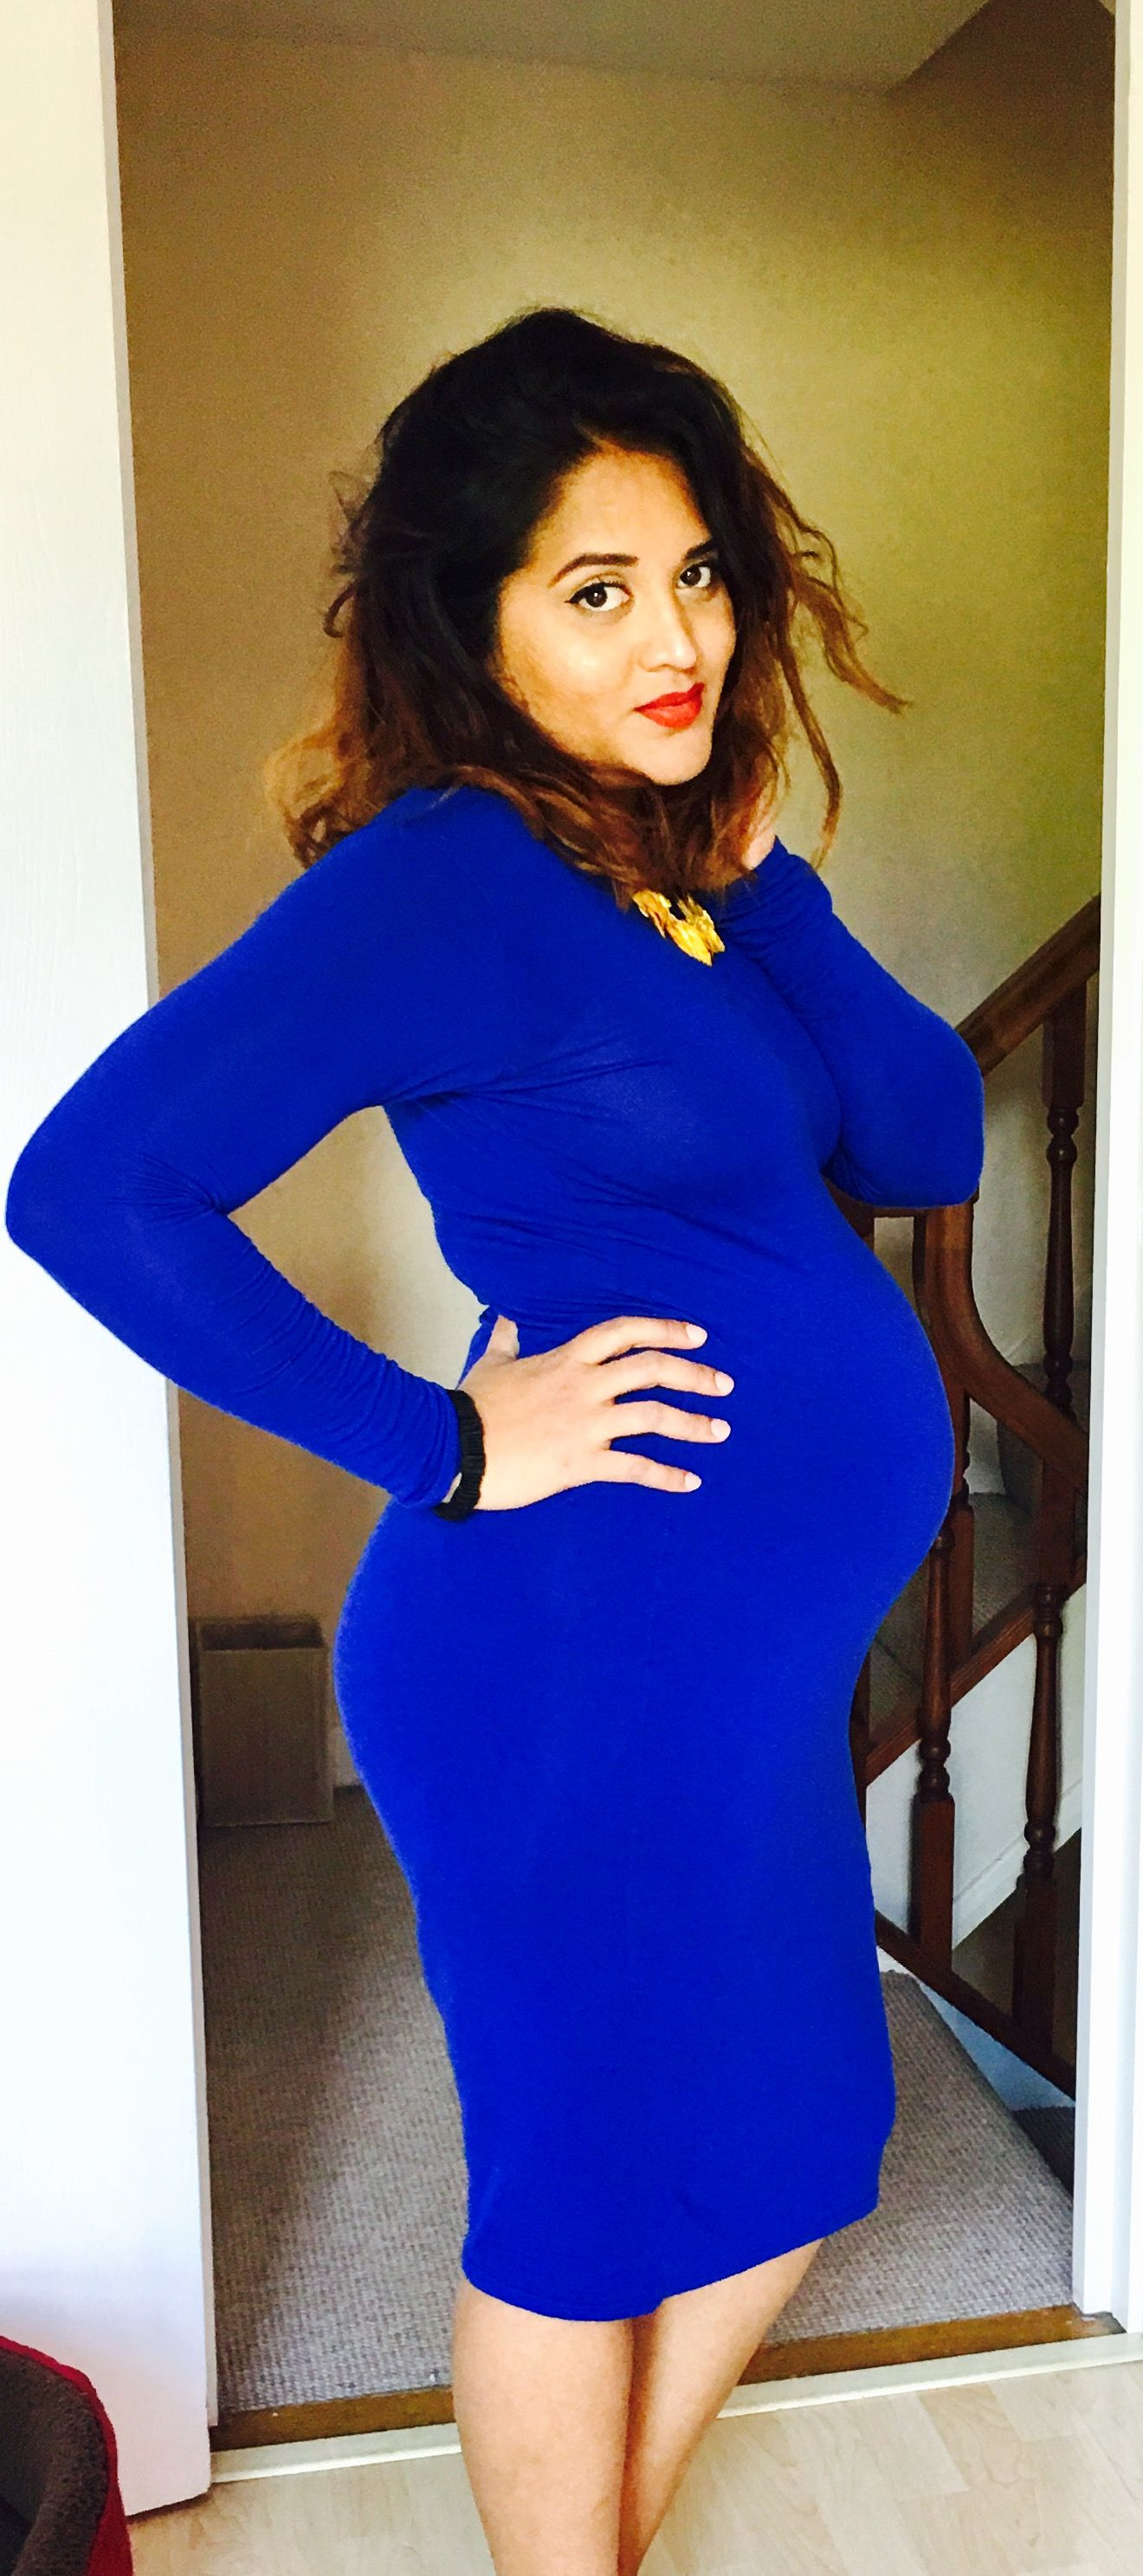 37a81419b Blue maternity dress with yellow necklace and red lipstick Maternity ...